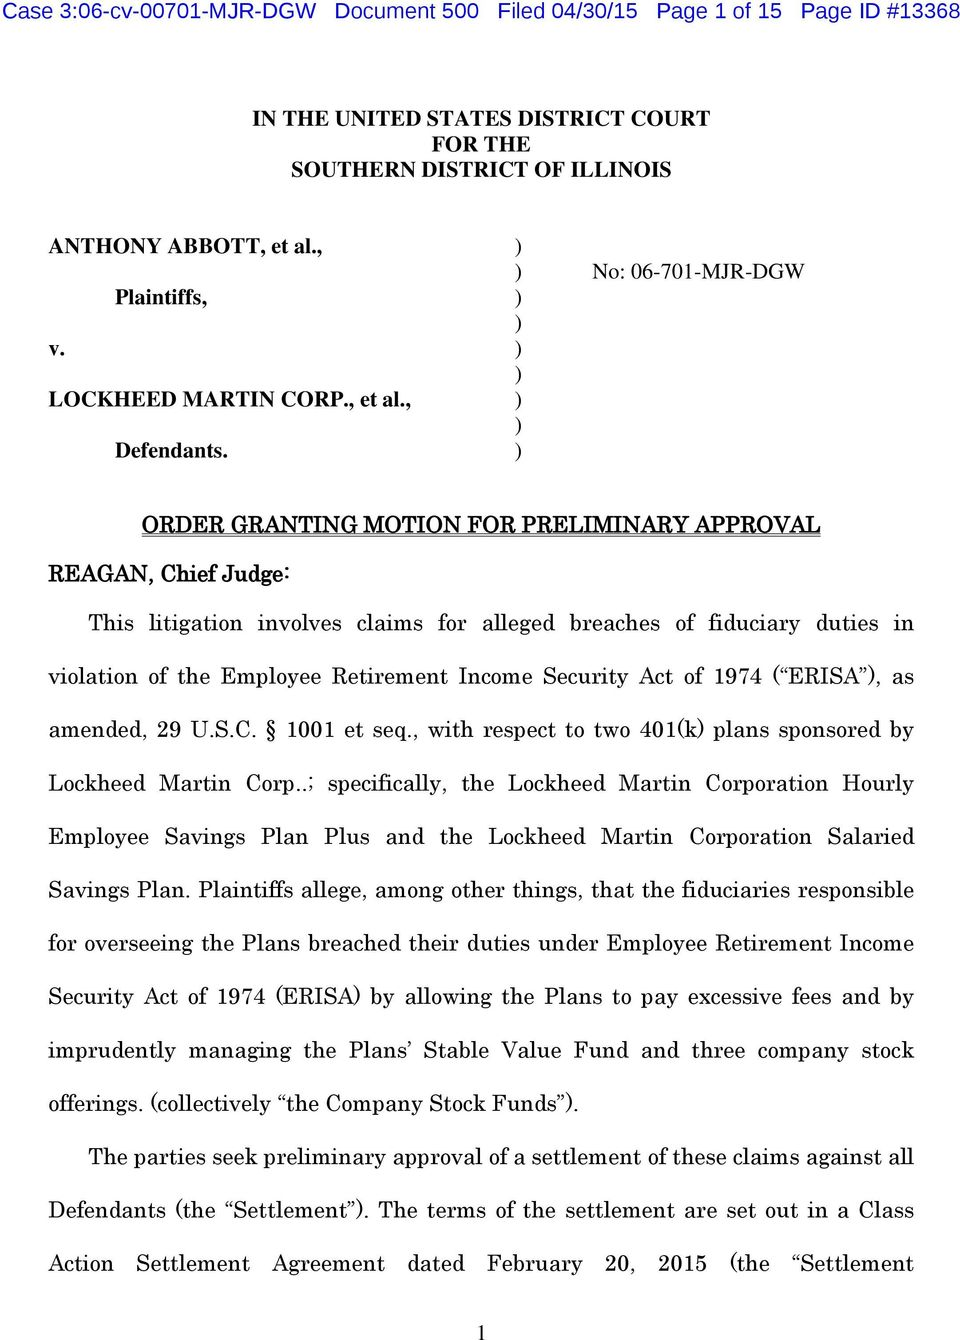 ) ORDER GRANTING MOTION FOR PRELIMINARY APPROVAL REAGAN, Chief Judge: This litigation involves claims for alleged breaches of fiduciary duties in violation of the Employee Retirement Income Security